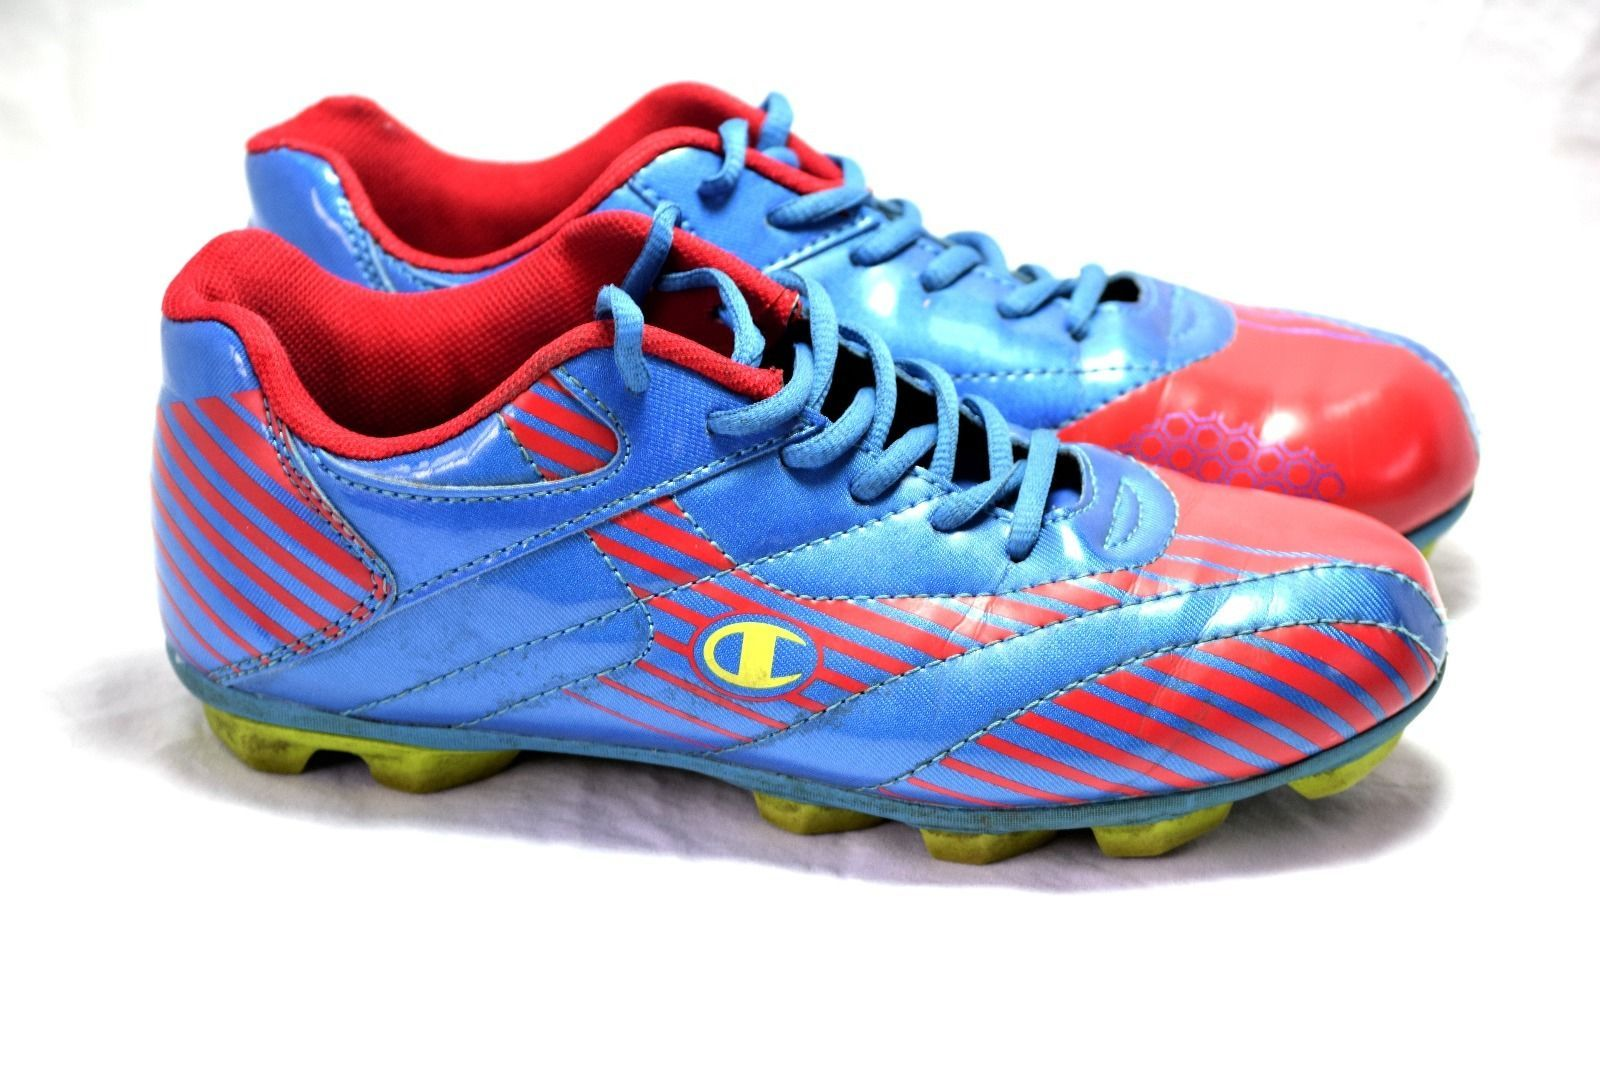 0056cb01d Champion Youth Sz 4.5 Soccer Cleats Sports Shoes Athletic Red Blue